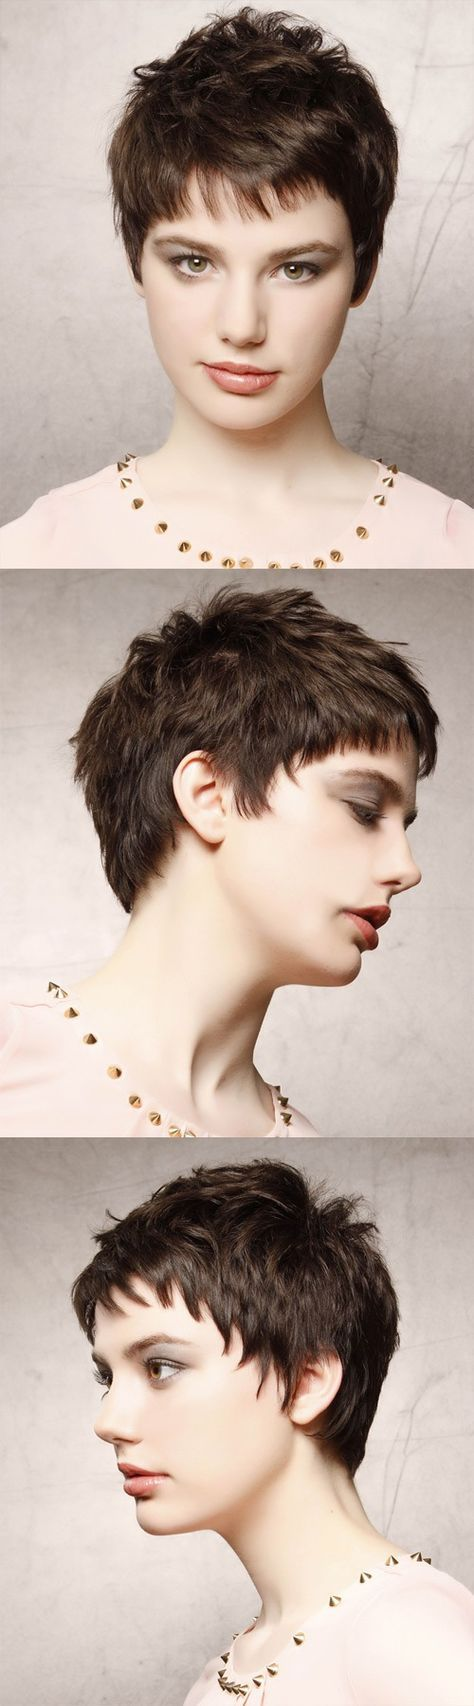 trendy short haircuts for women in dark brunette pixies